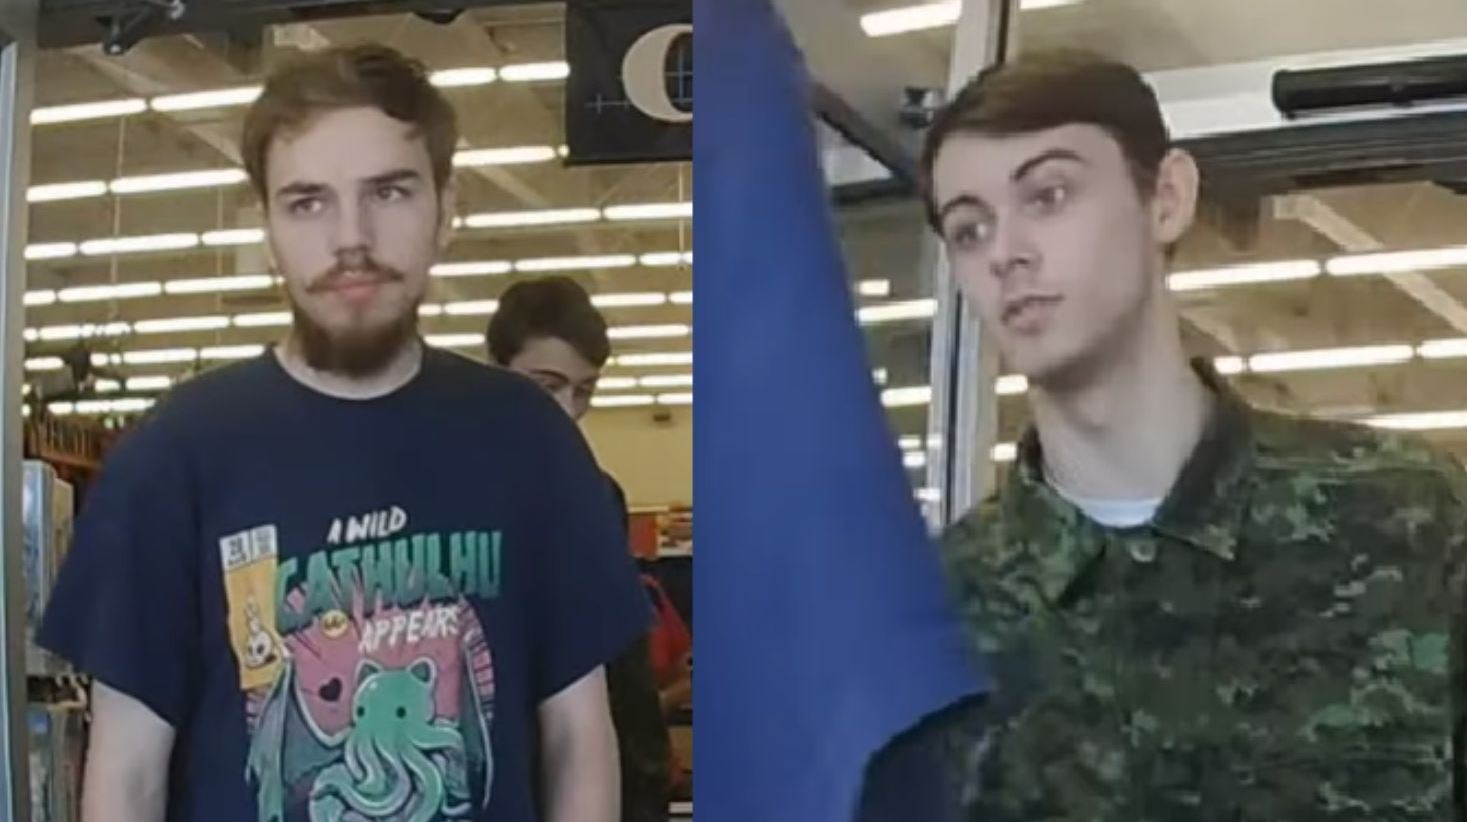 Suspects confessed to B.C. homicides in videos: RCMP